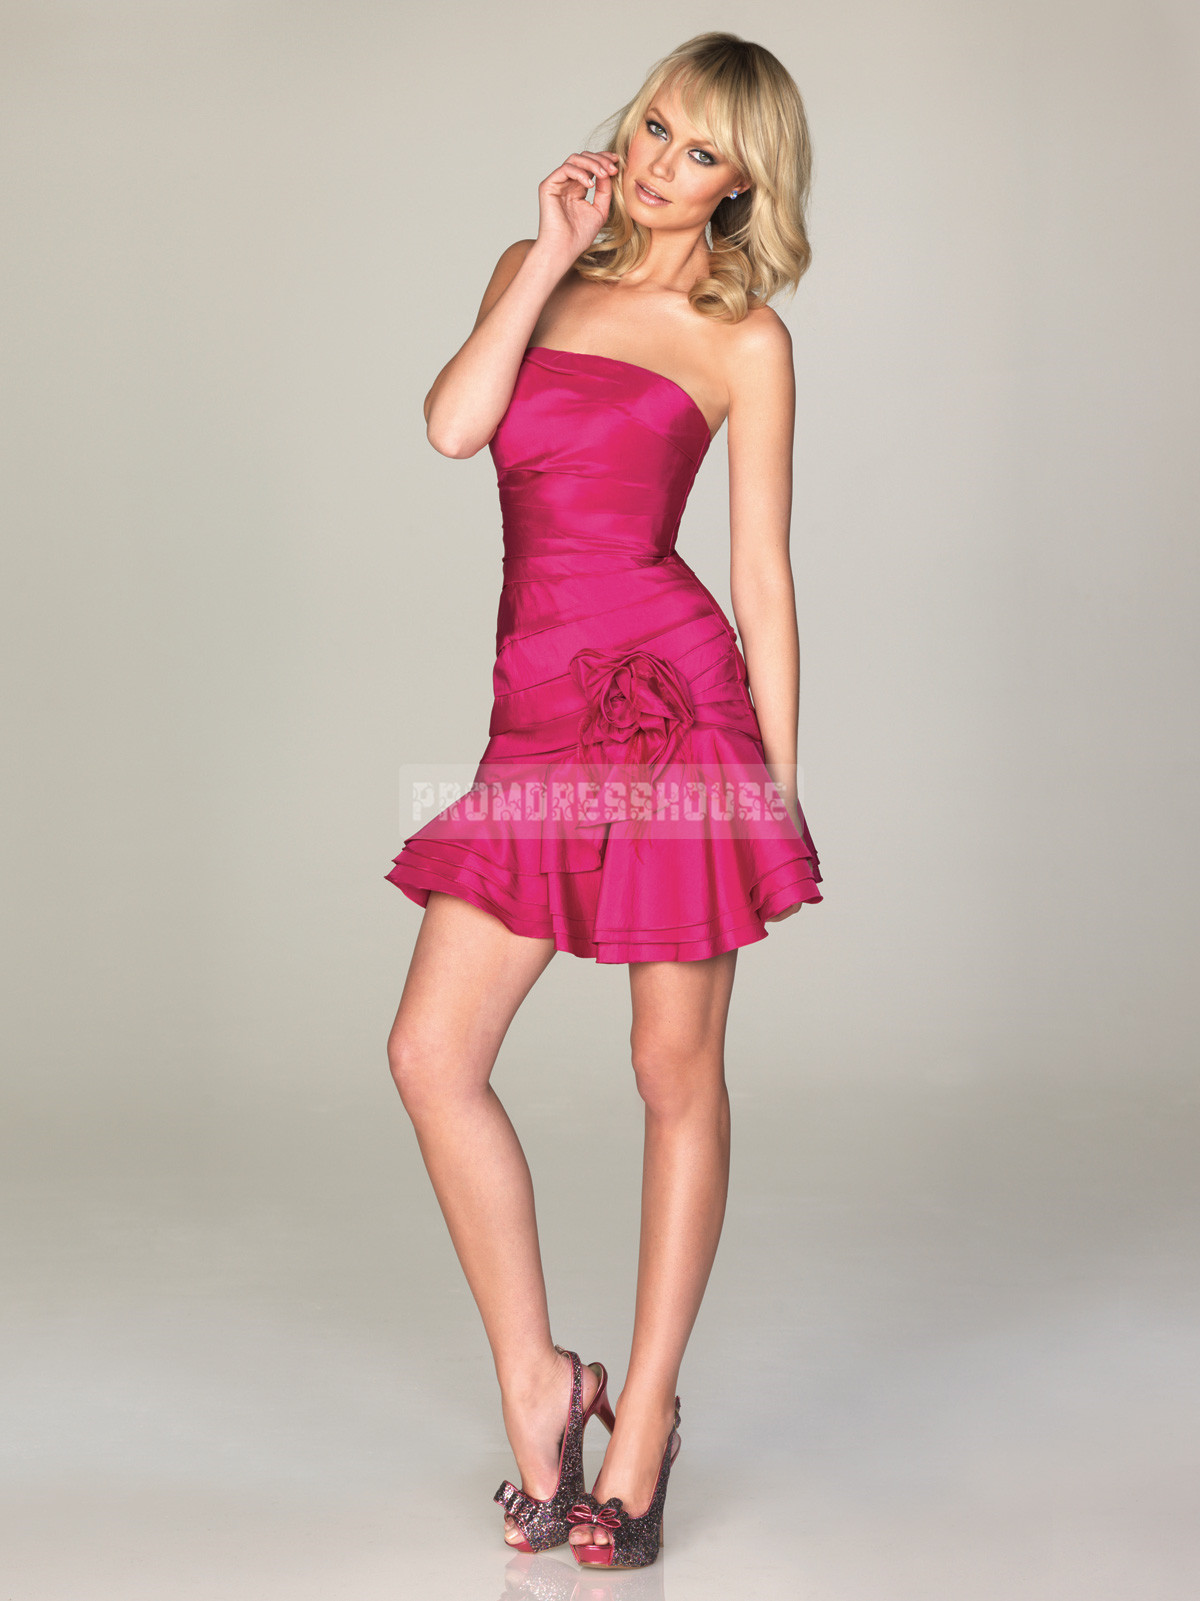 Ruching Chic Strapless Zipper Short Length Taffeta A-line Prom Dress - Promdresshouse.com